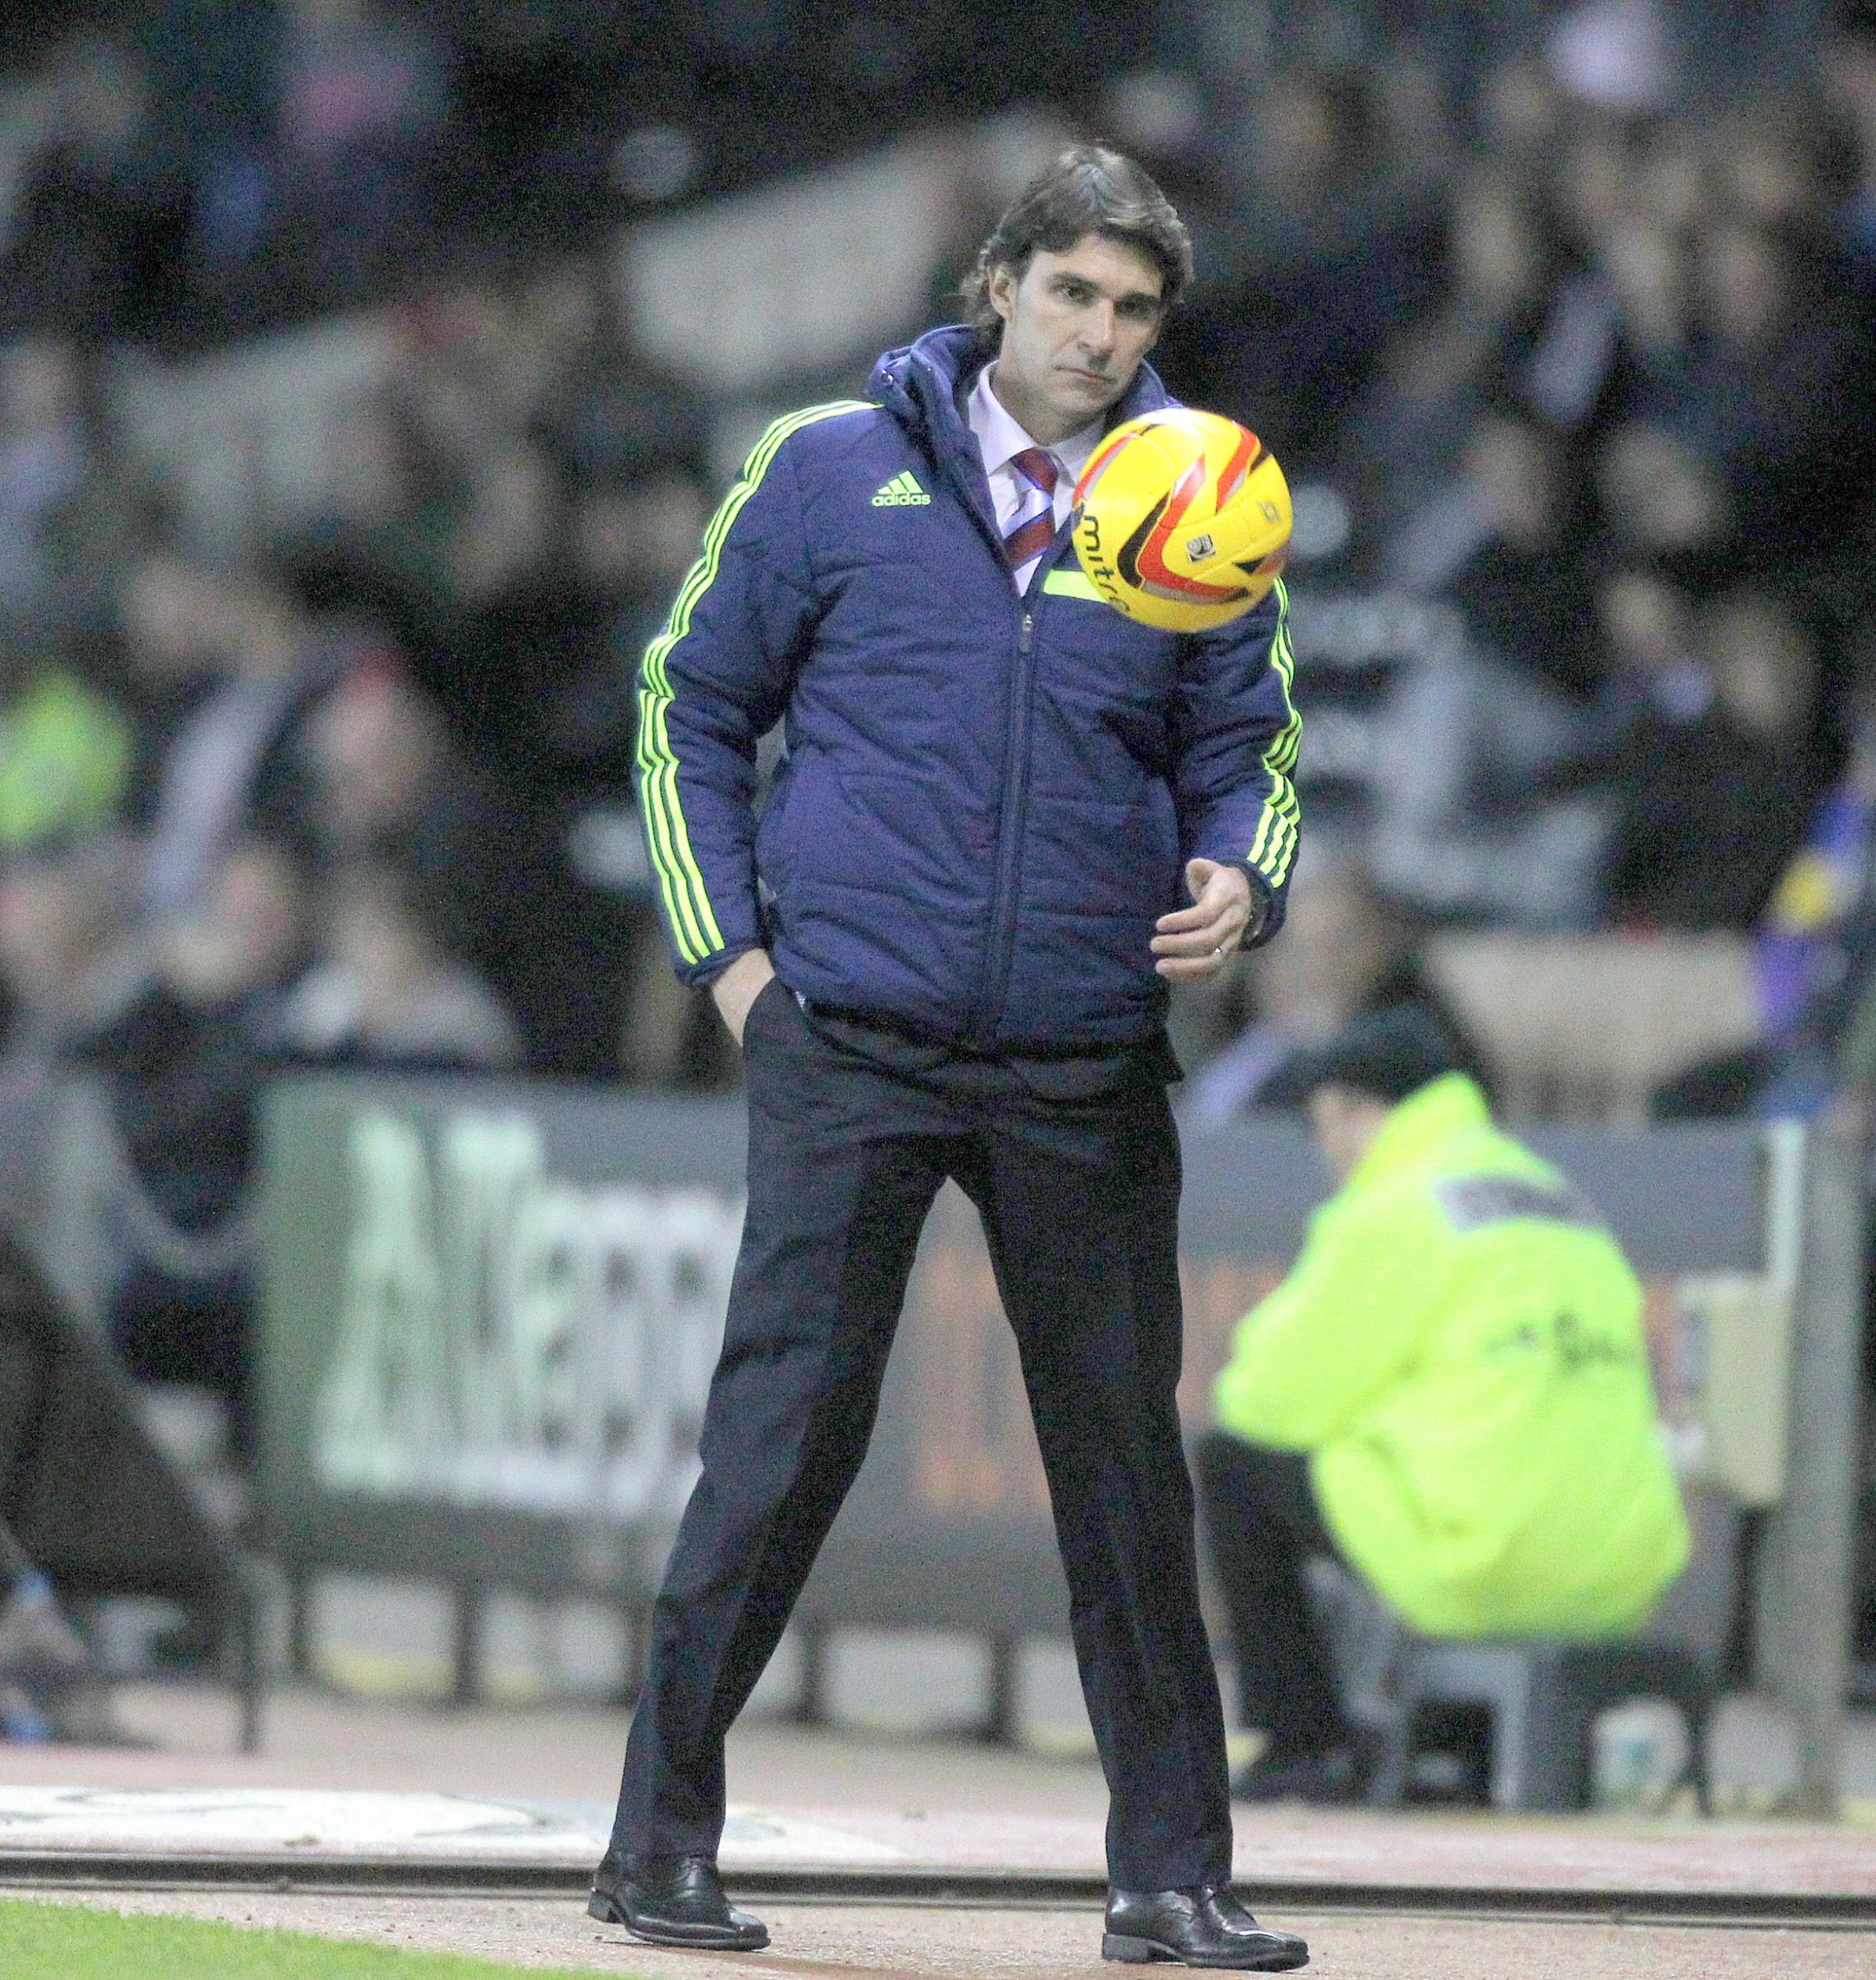 TRAINING GAME: Aitor Karanka has had a full week to iron out problems with his squad